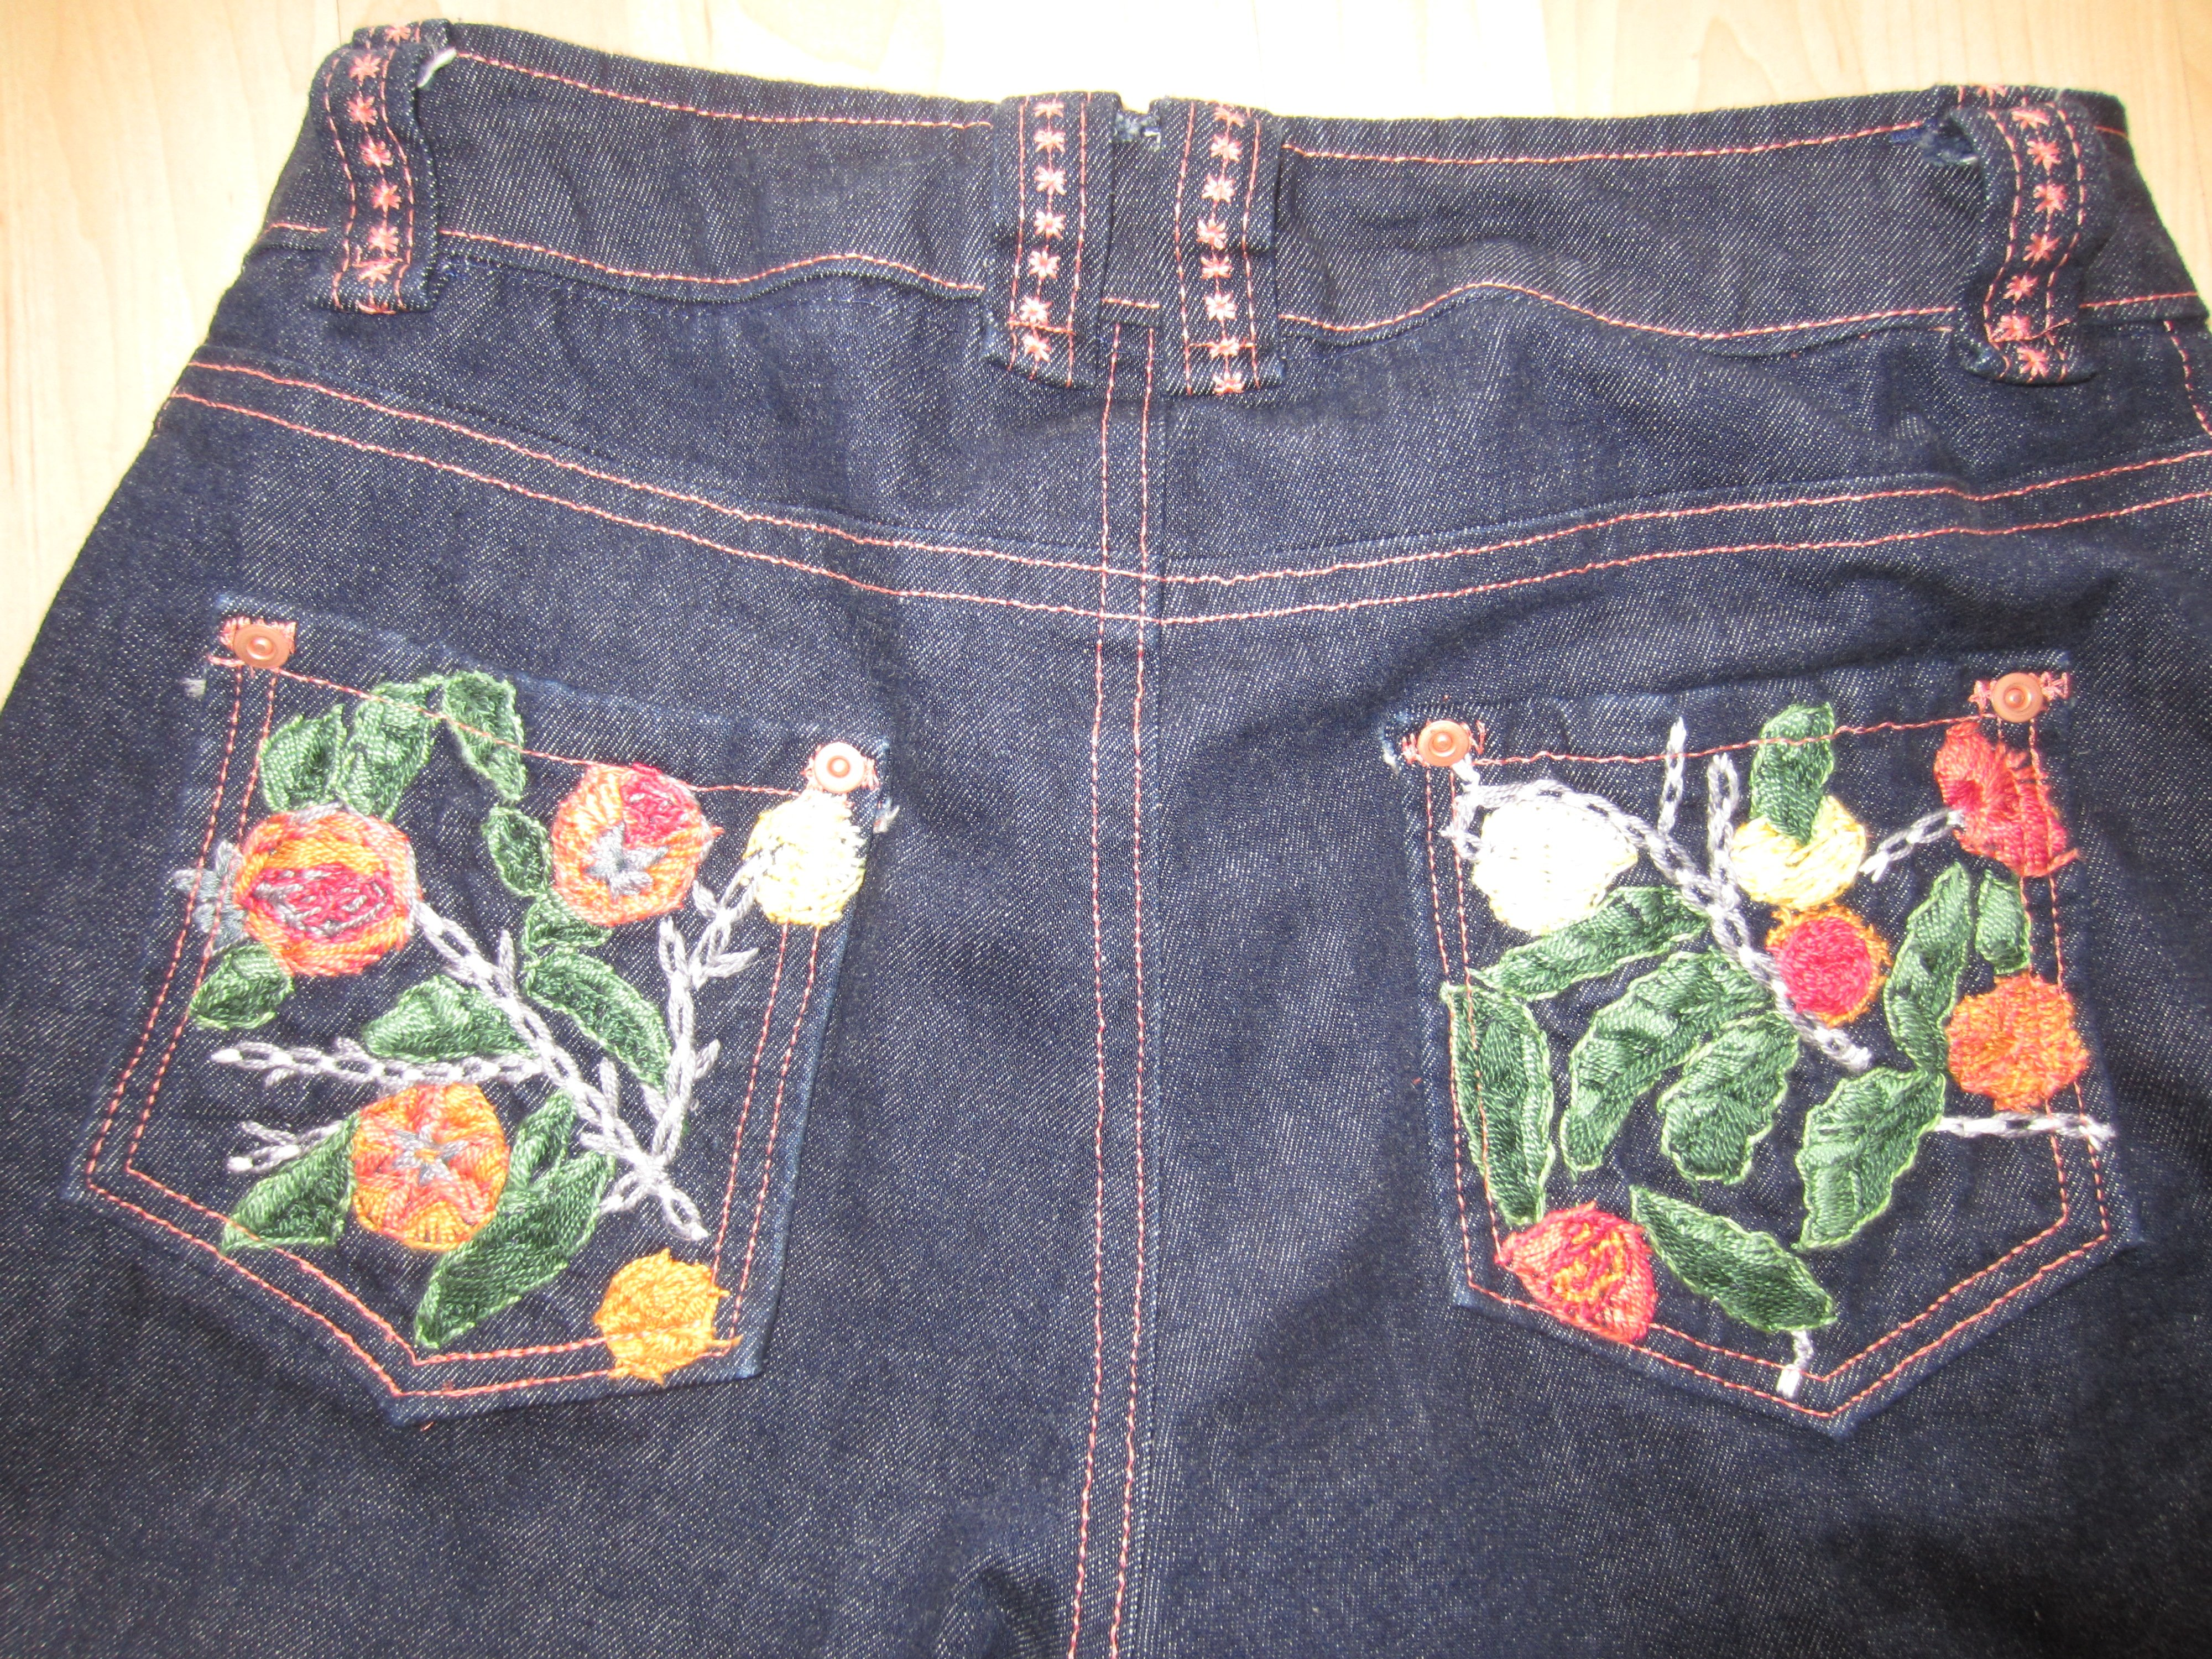 detail shots-Organic Denim Jeans with Hand Embroidery- Sew Pomona